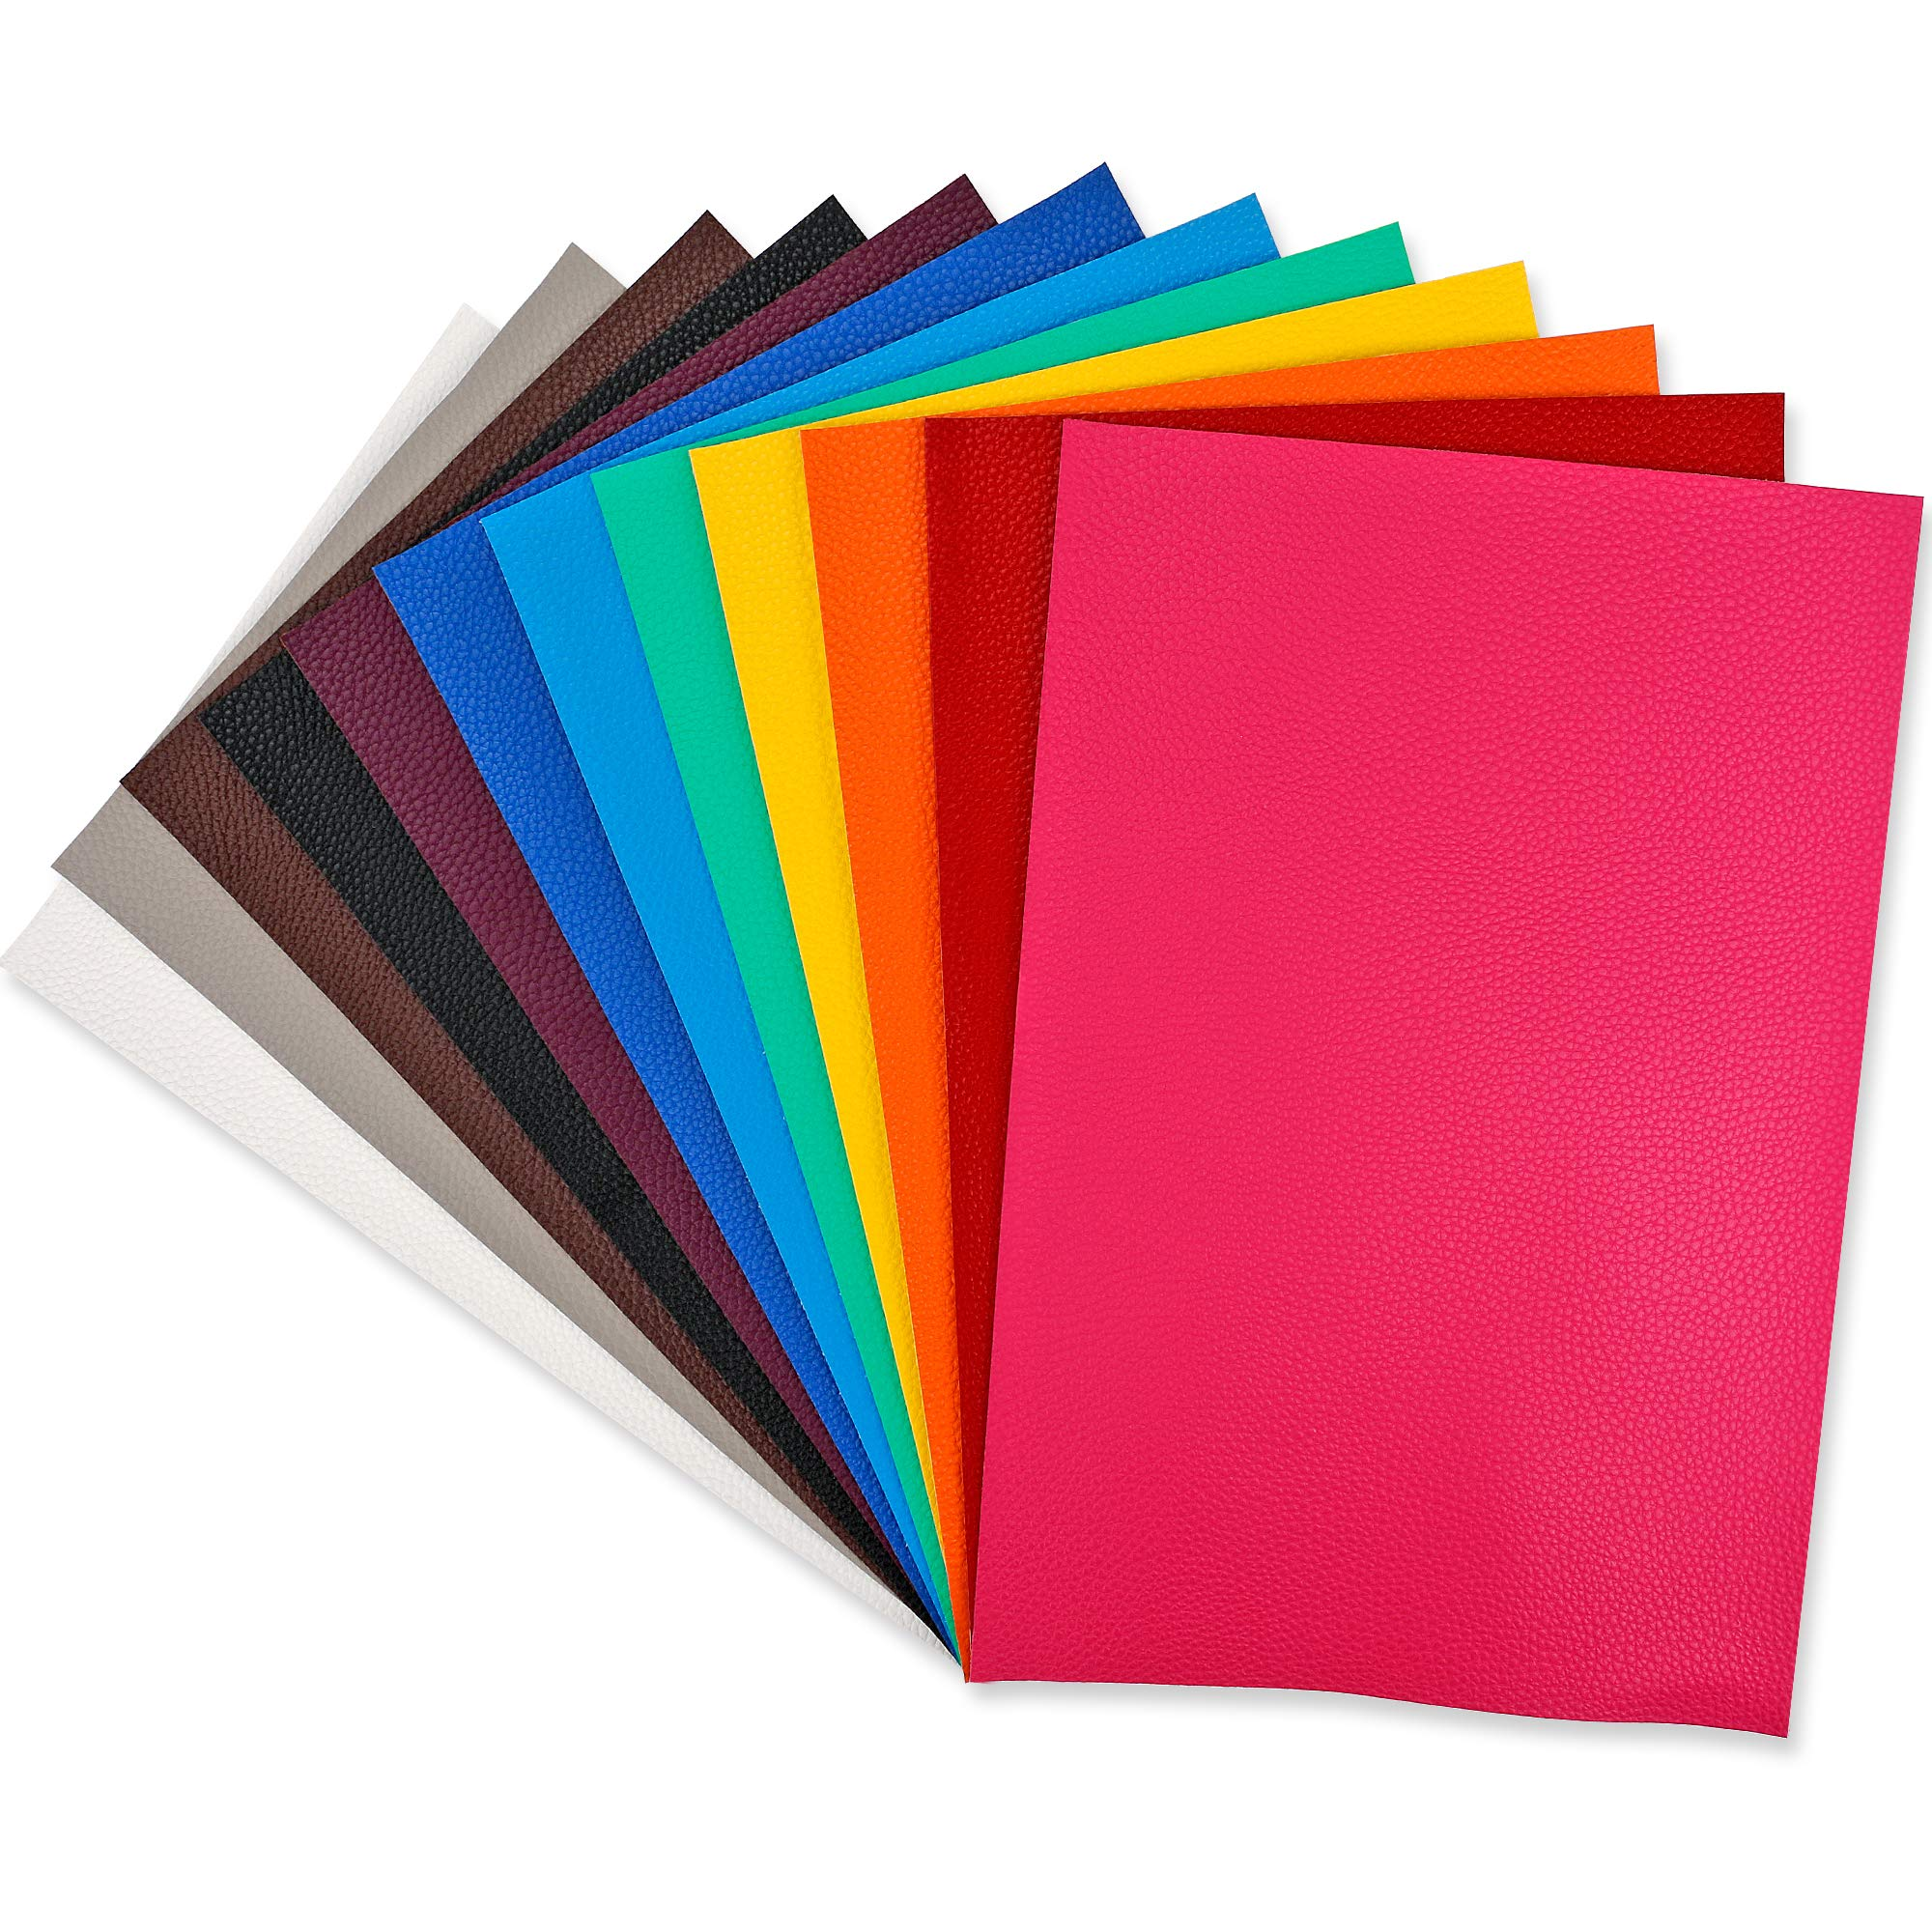 12 PCS PU Leather Fabric Leather Canvas Back 8'' x 12'' with 12 Different Colors for Making Hair Bow Wallet Handbags Dressing Sewing Craft DIY Projects